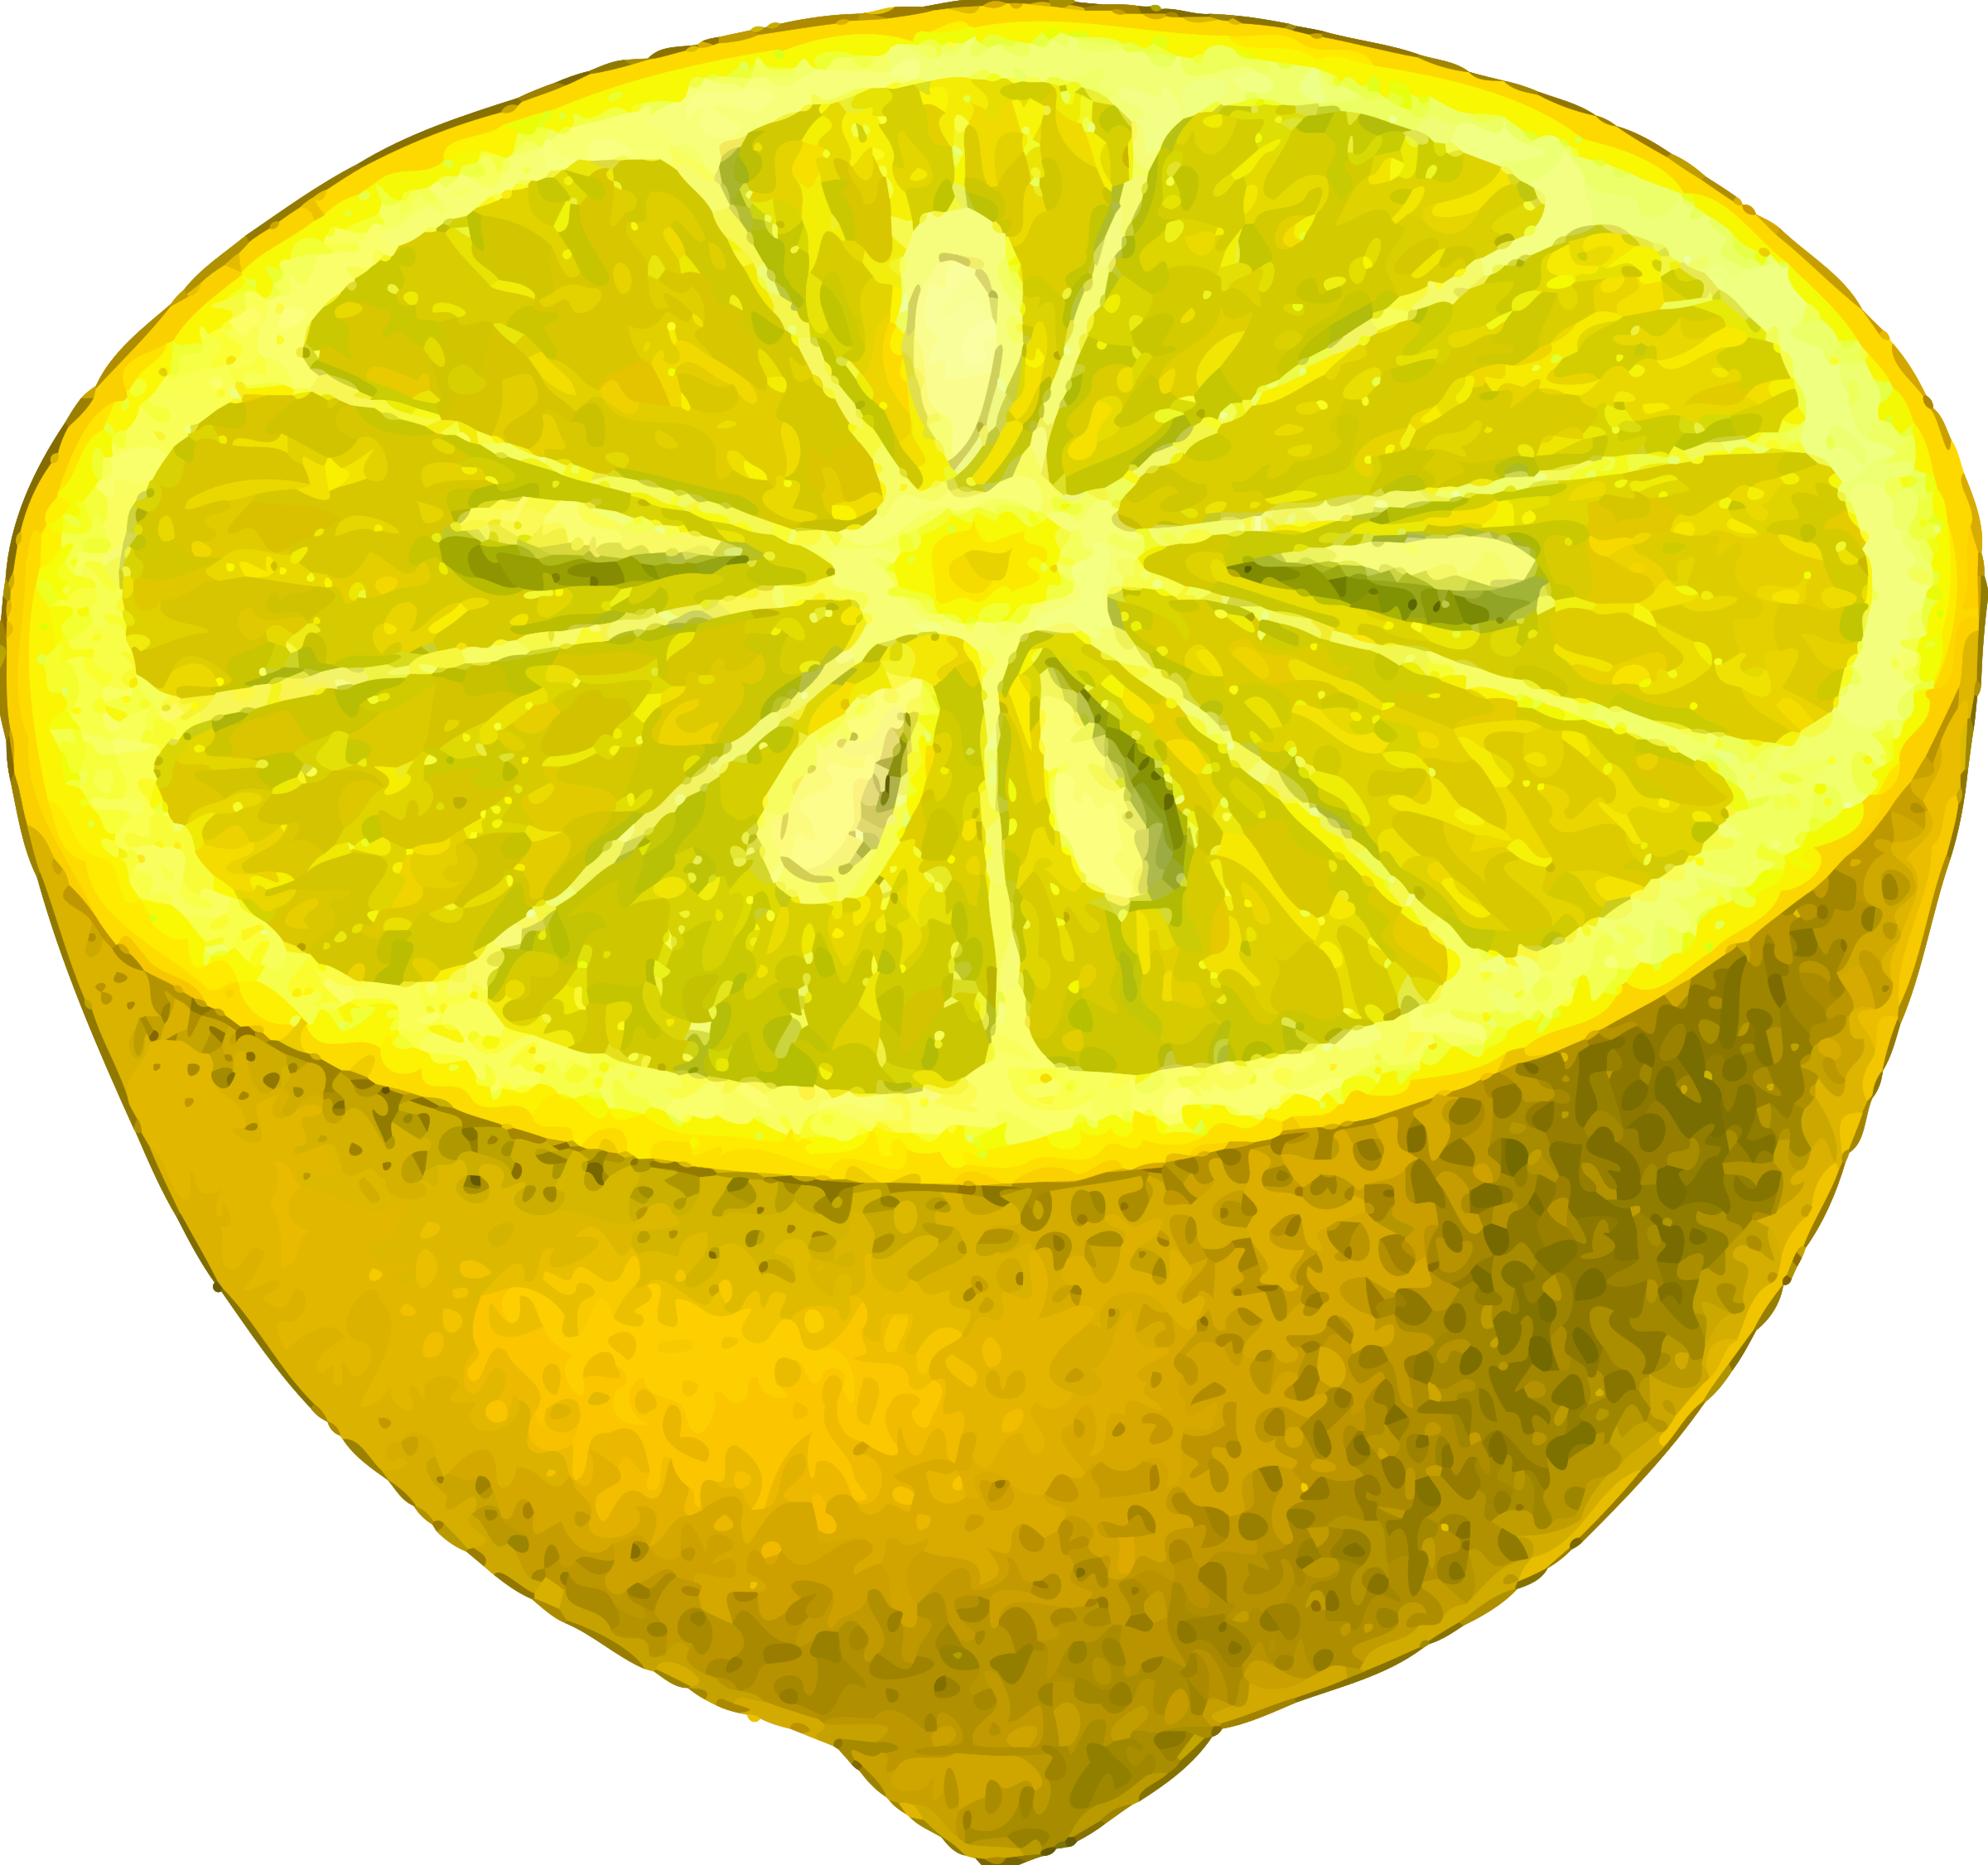 Half-lemon (detailed) by Firkin